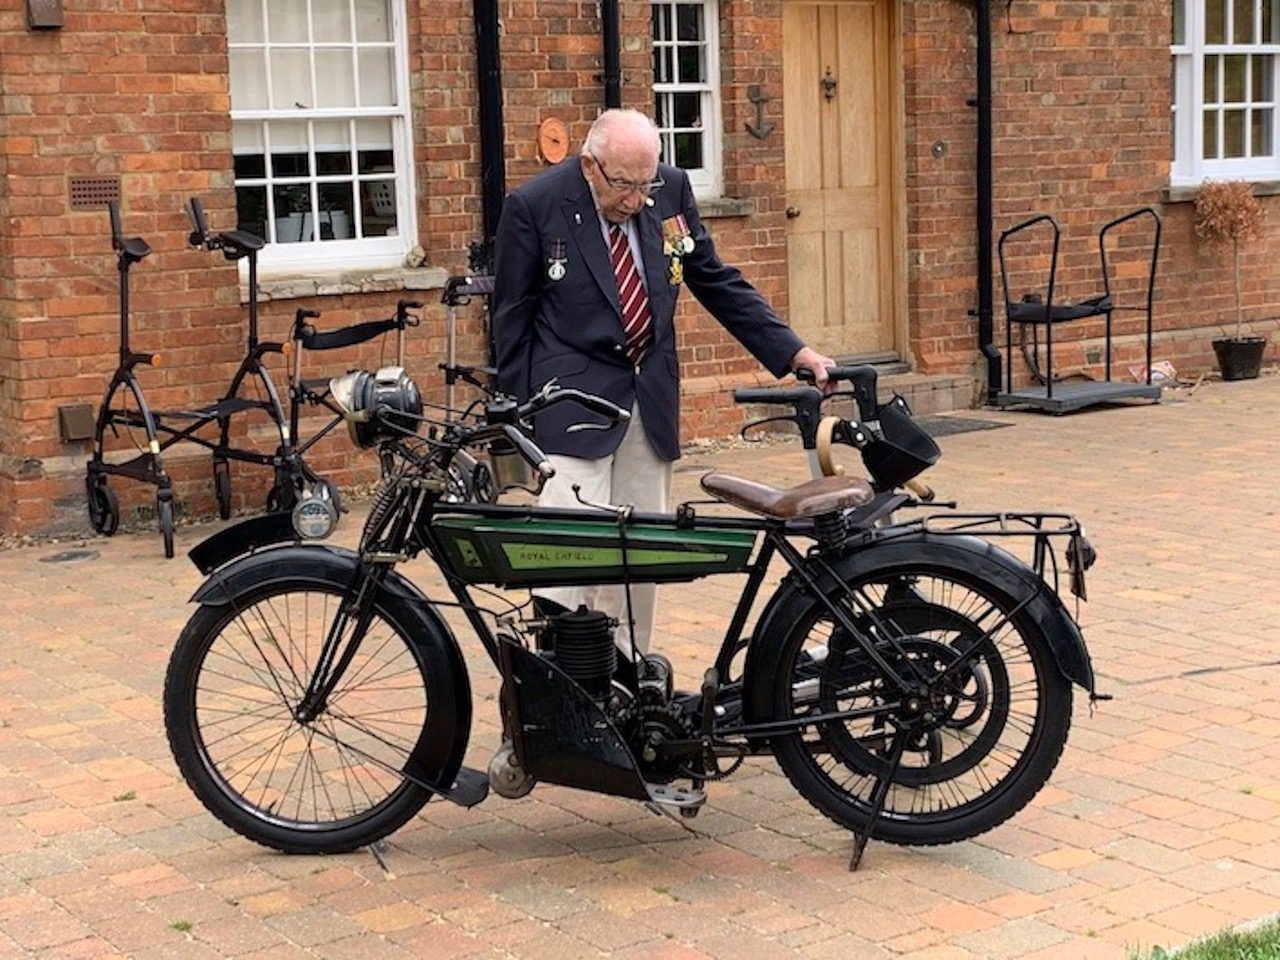 Captain Tom Moore and the Royal Enfield Model 200